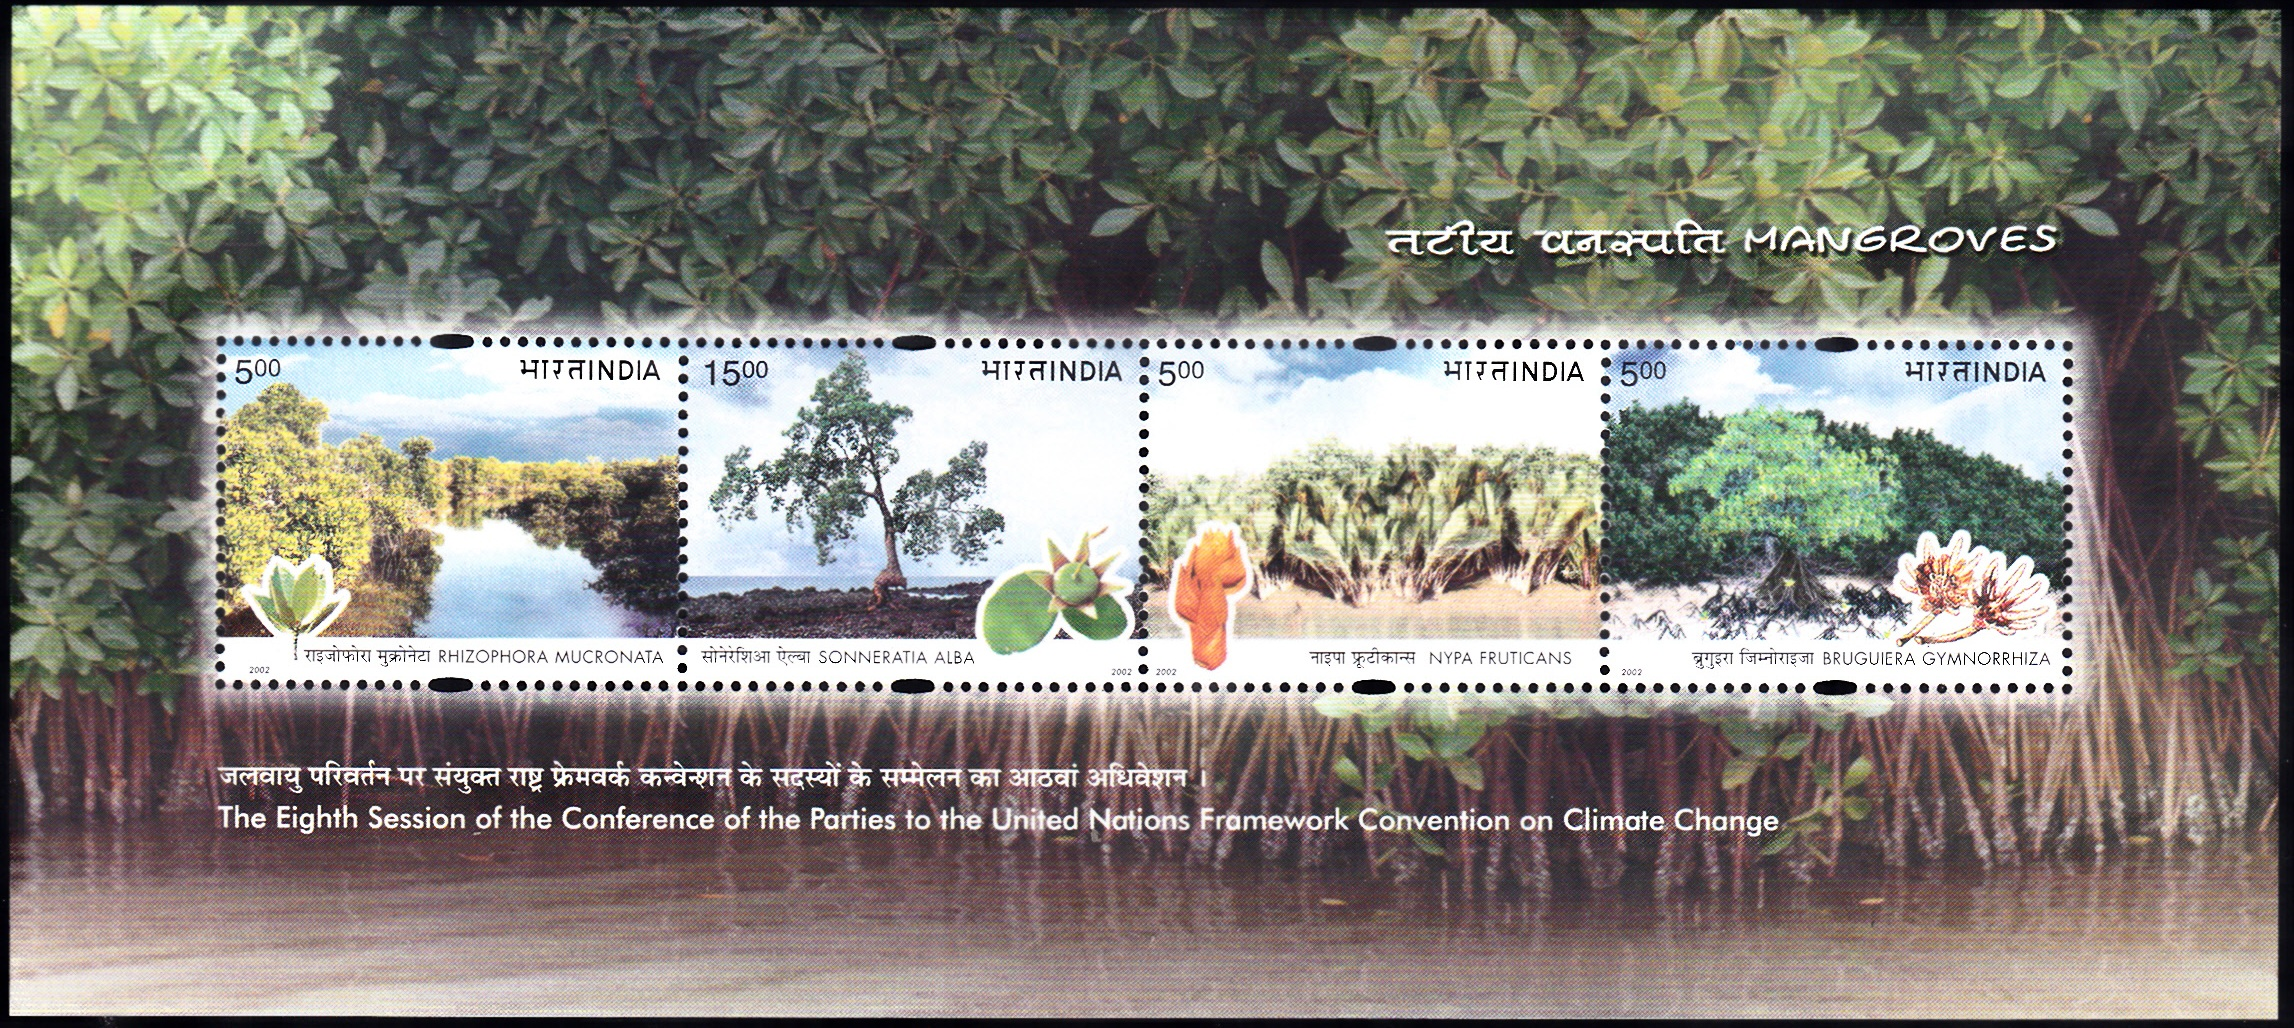 1930 Mangroves - Climate Change [India Miniature Sheet 2002]